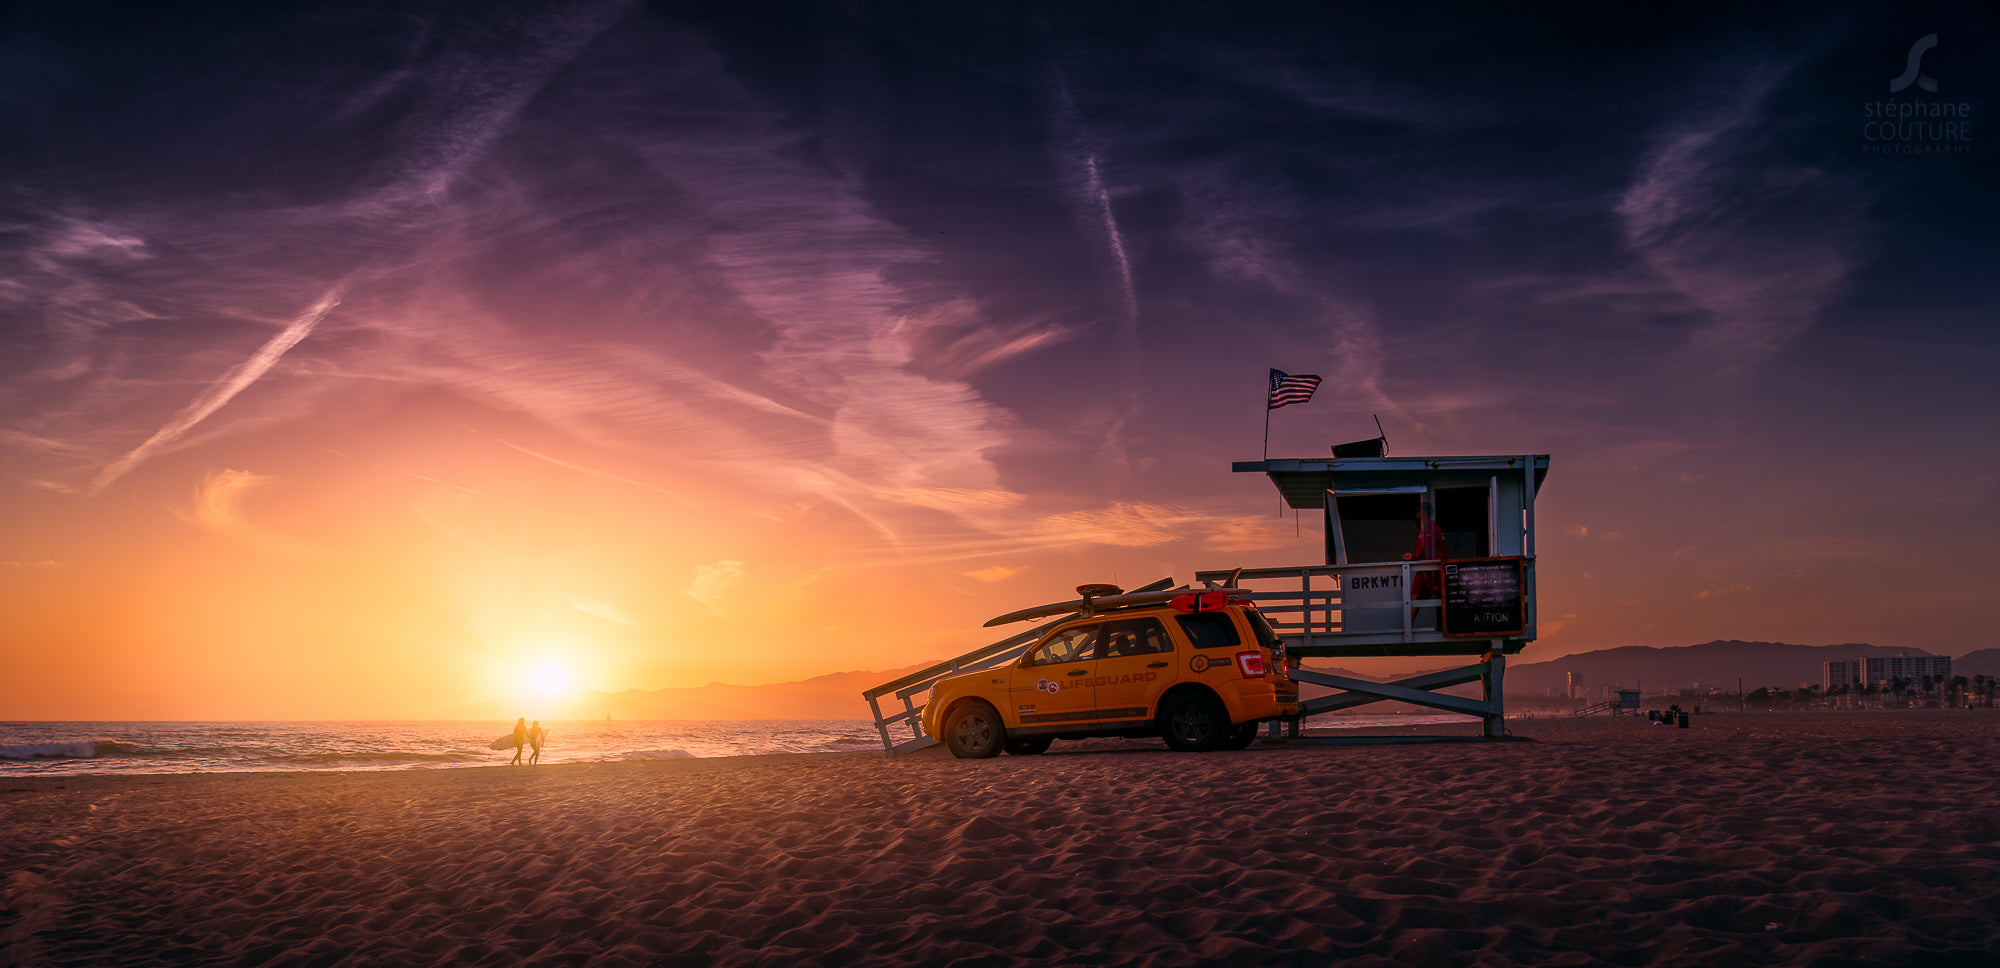 Stephane Couture's Venice Sunsets